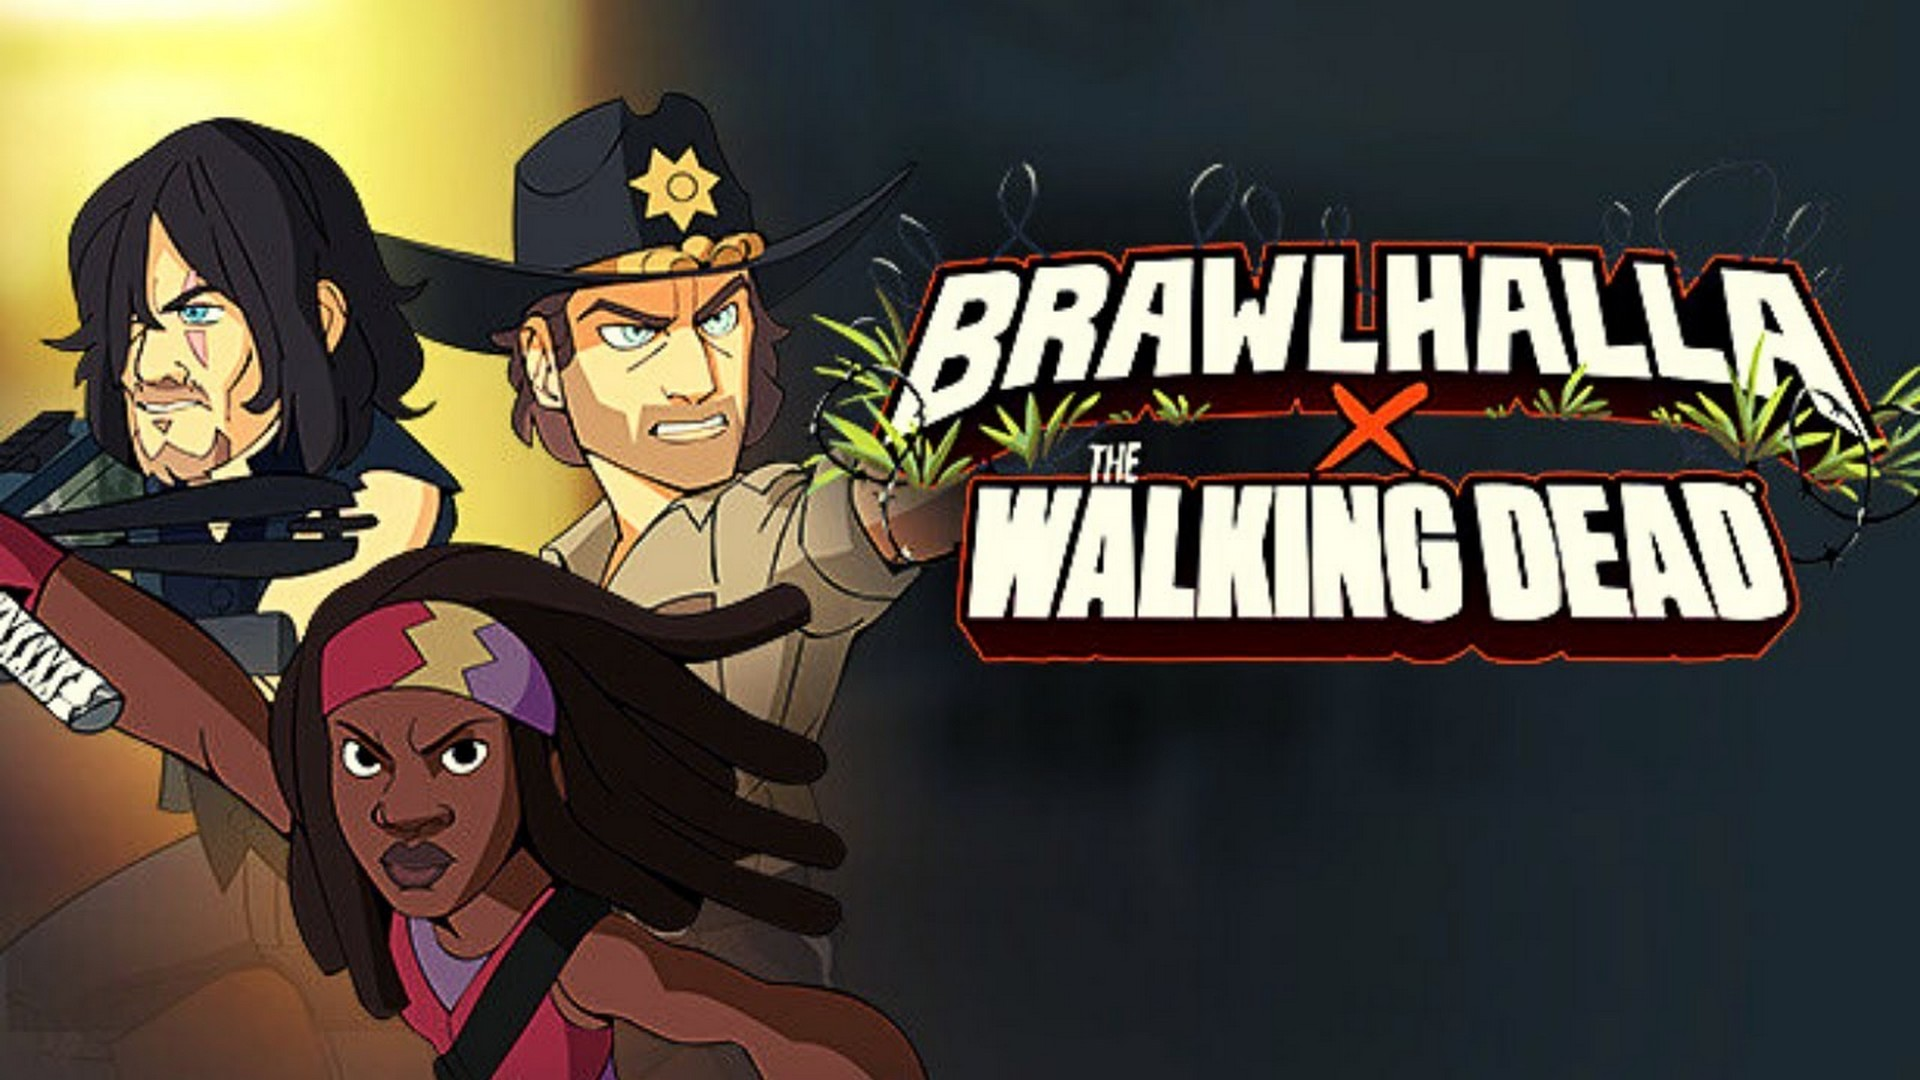 AMC's The Walking Dead's Michonne, Rick Grimes and Daryl Dixon Available Today in BRAWLHALLA As Epic Crossovers